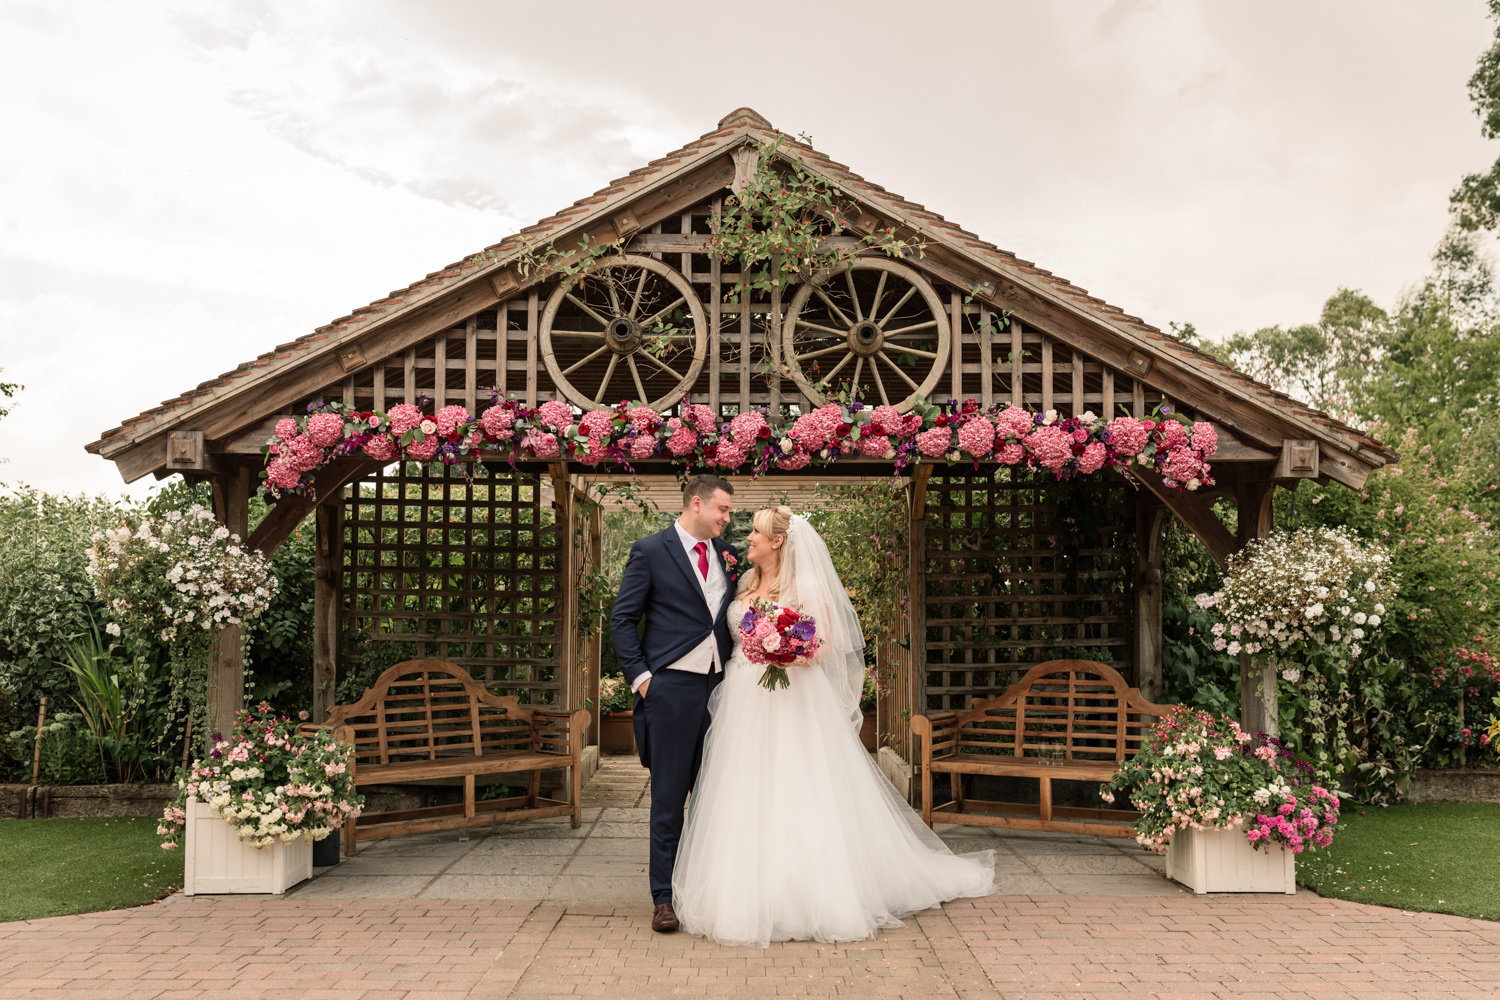 Flower filled summer wedding with pink hydrangeas, photo credit Becky Harley Photography (41)